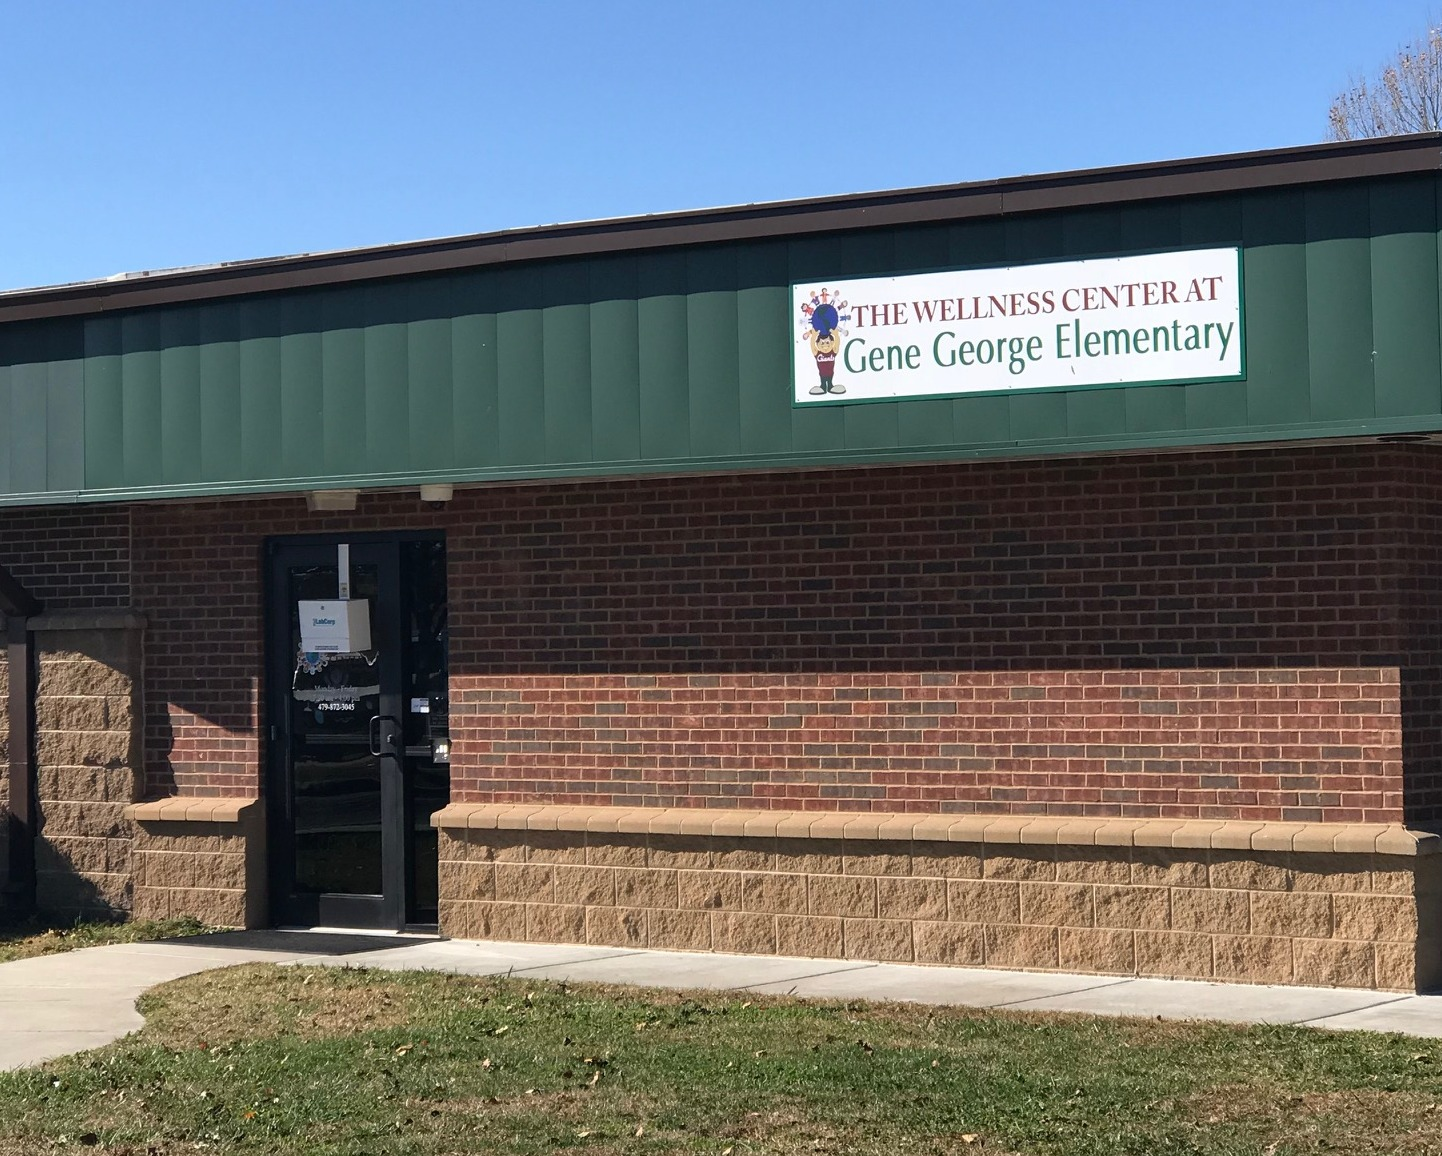 George Elementary | Wellness Center